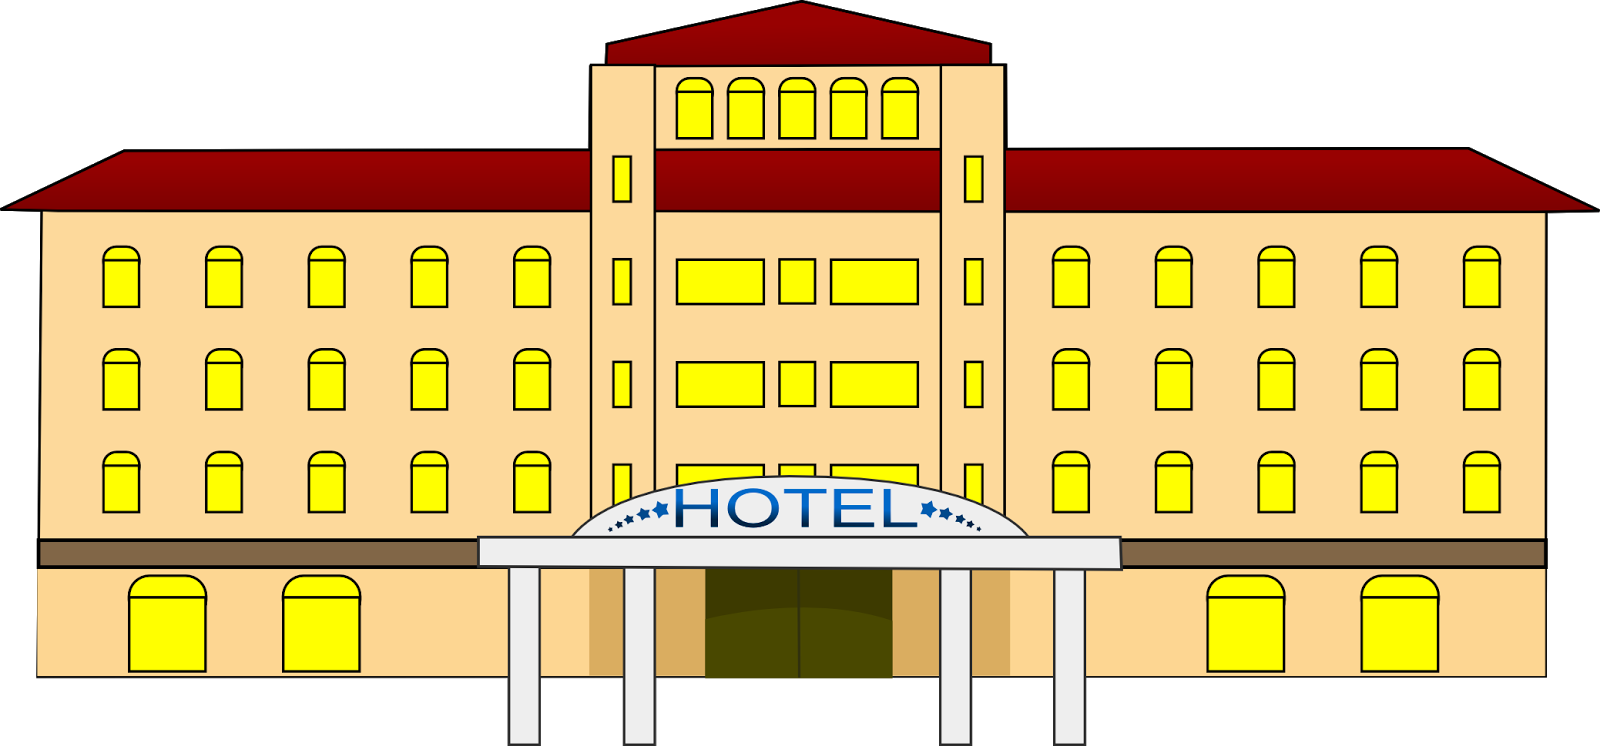 Hotel clipart hotel table. Esl and efl resources